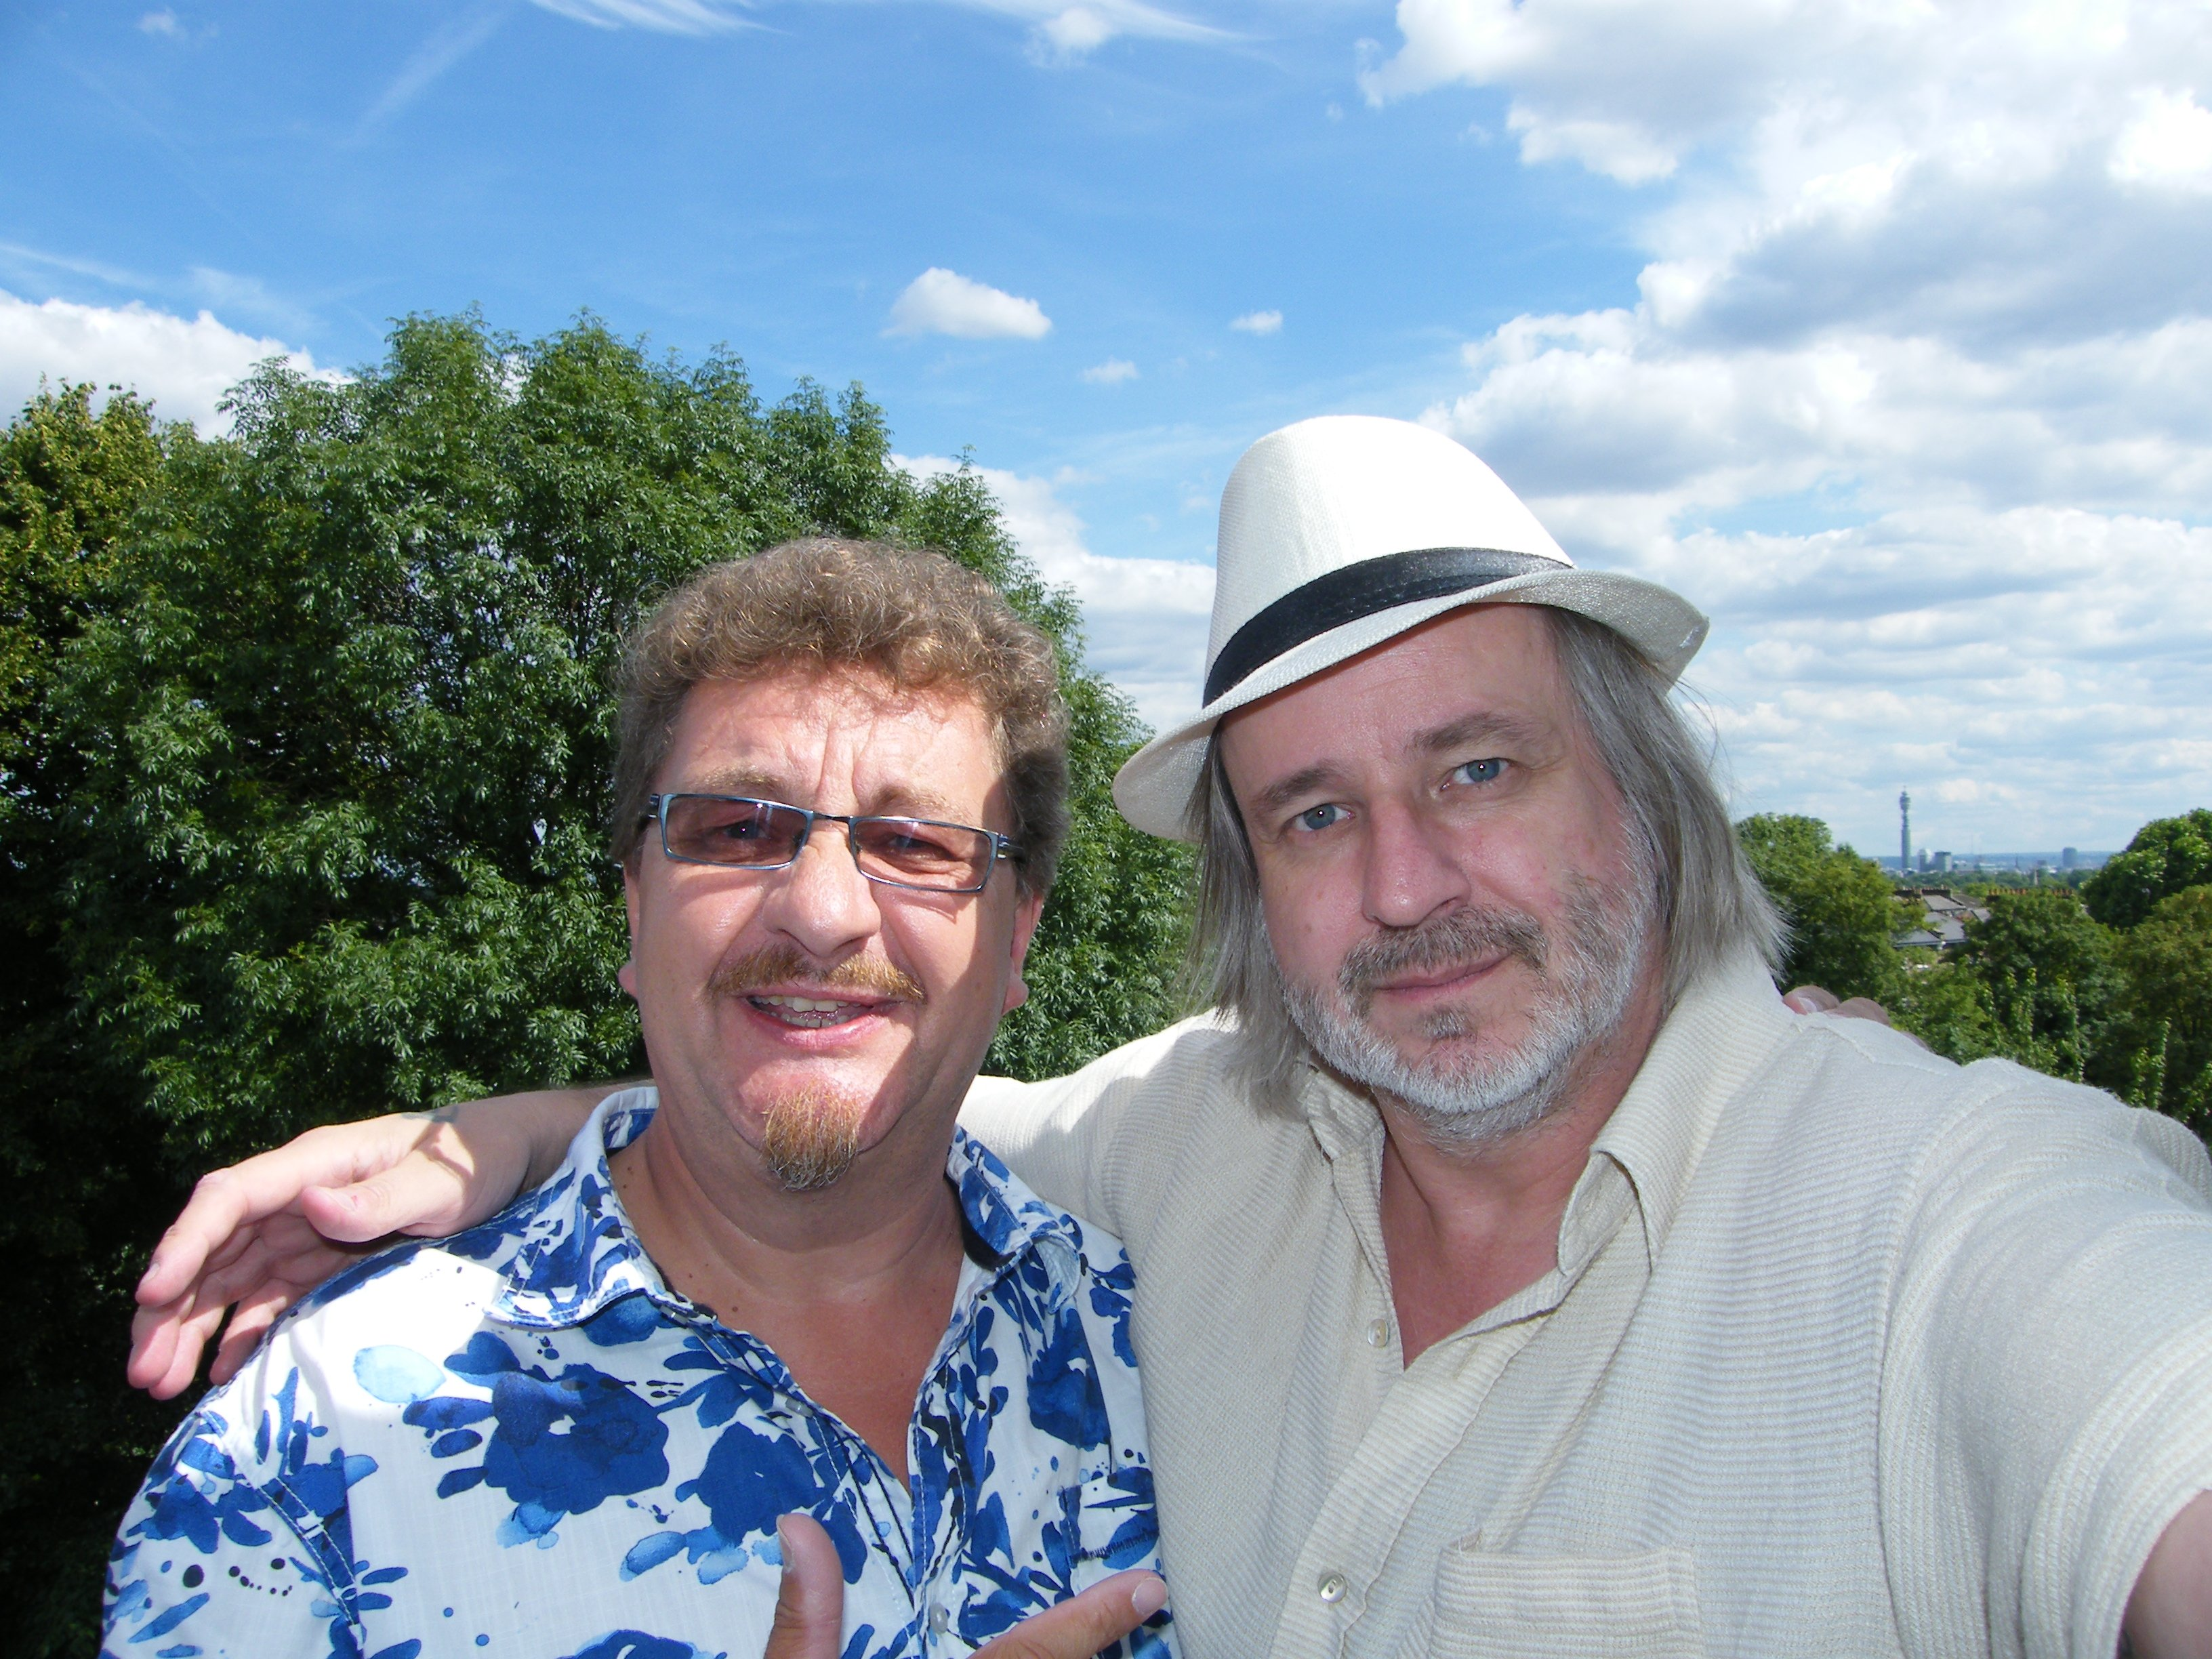 Down from the roof, but on his balcony! PETE LOCKETT (R) with Bob from the Global Drum Network (Episode 7)